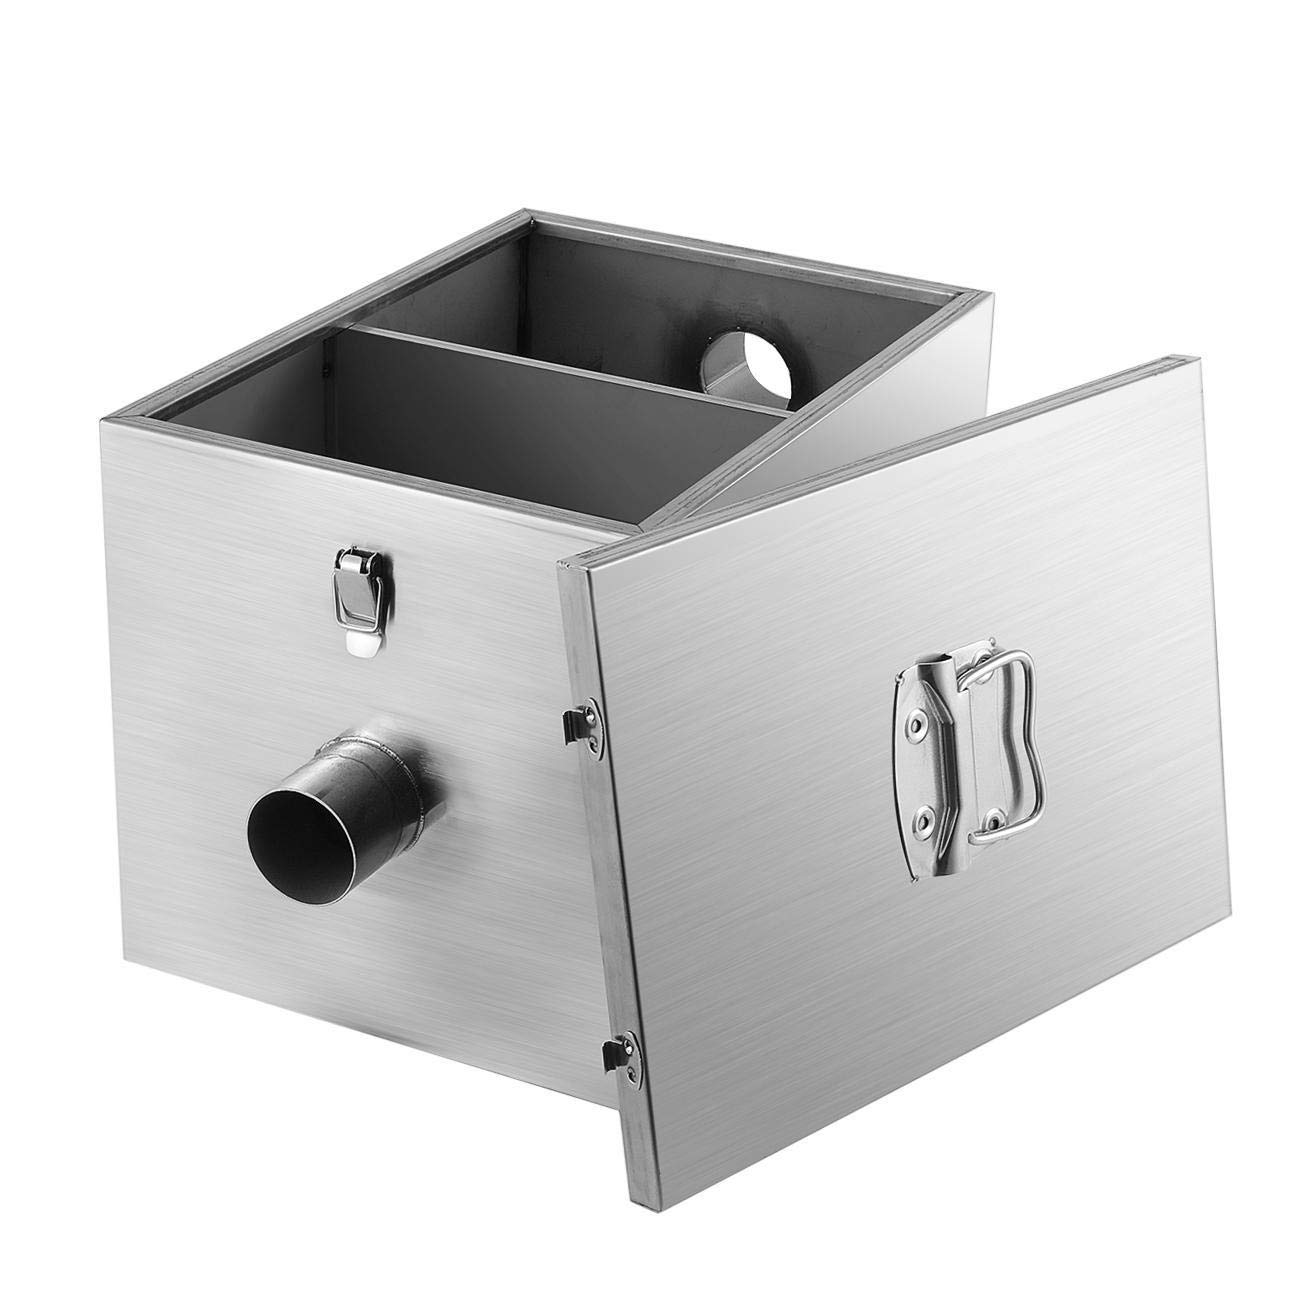 BEAMNOVA 9lbs Commercial Grease Trap Stainless Steel Interceptor 61UwSR3tM-L._SL1300_